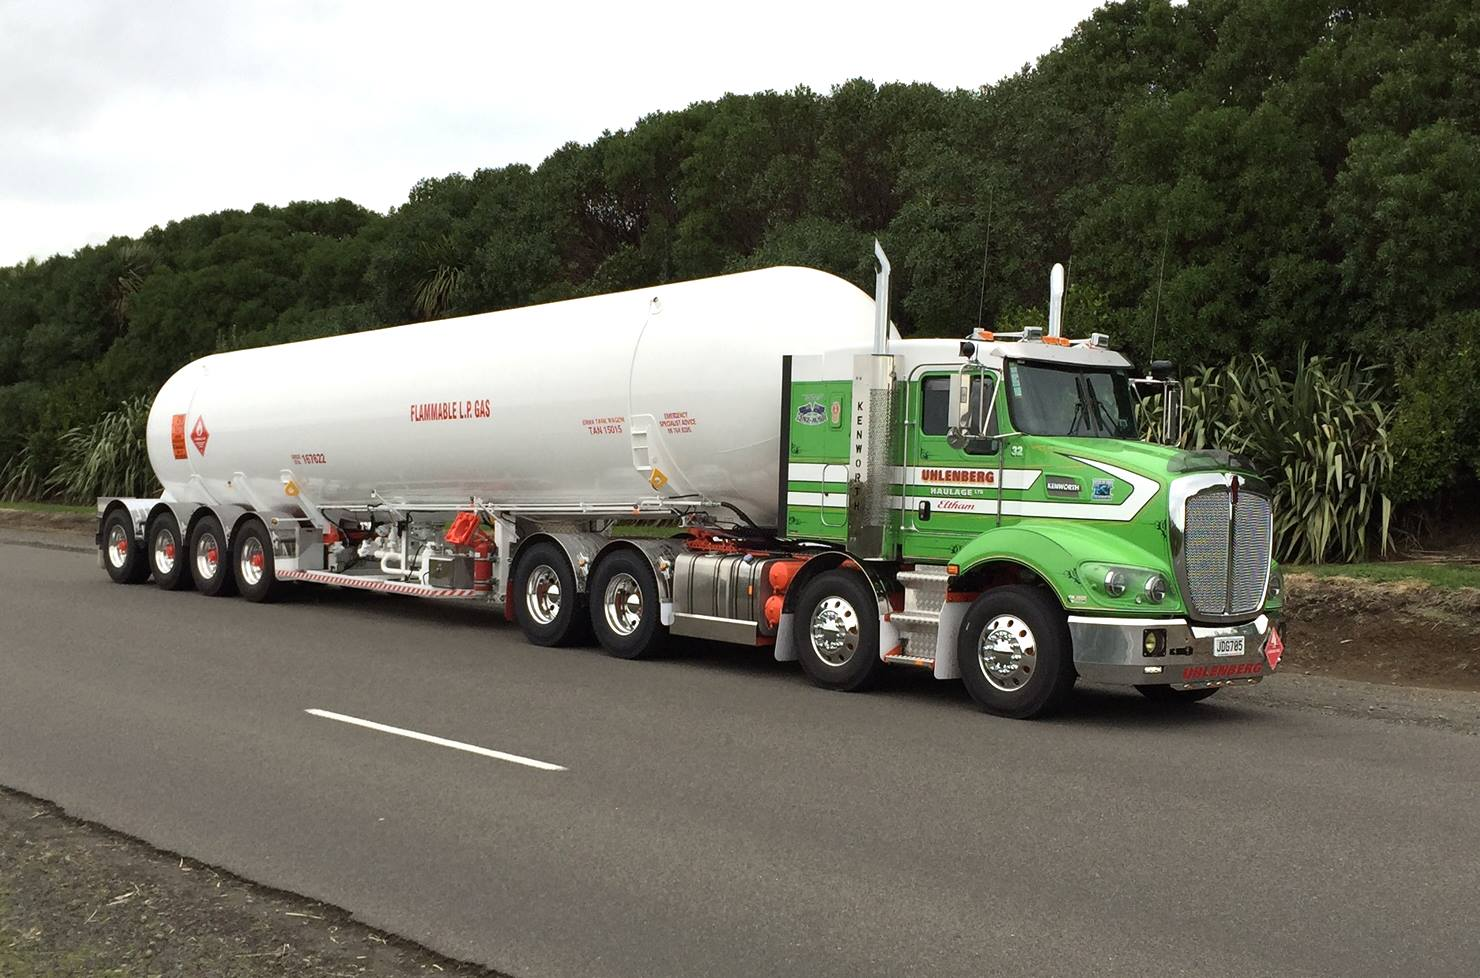 Watch in addition fleetassistusa furthermore Lpg Road Tankers 2 further 329029760 moreover Air Brake Application. on semi truck trailer company